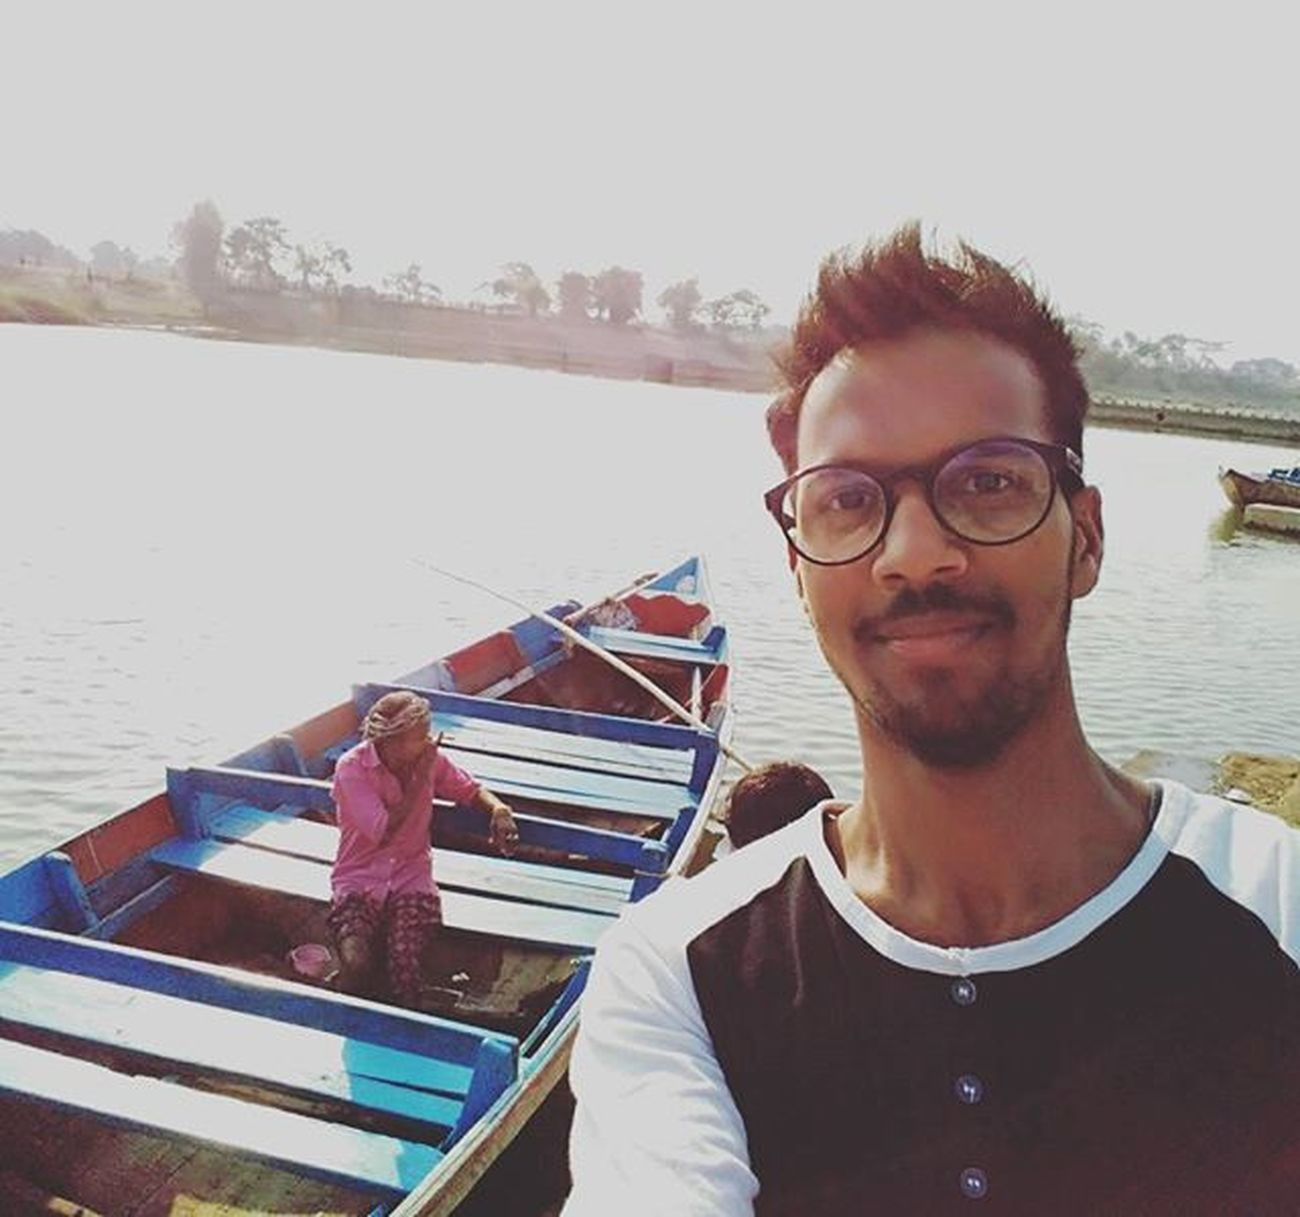 6. Talagaun . . . . A man resting in the boat ..Selfie with the boatsman...😀 Cool Selfination River Boat Scenery Talagaun Bilaspur Chhattisgarh Photography Indiaclicks Indian _soi Architecture Historicalplace History Ancient Phonography  Asus Pixelmastercamera Myself Me Instagood Followme